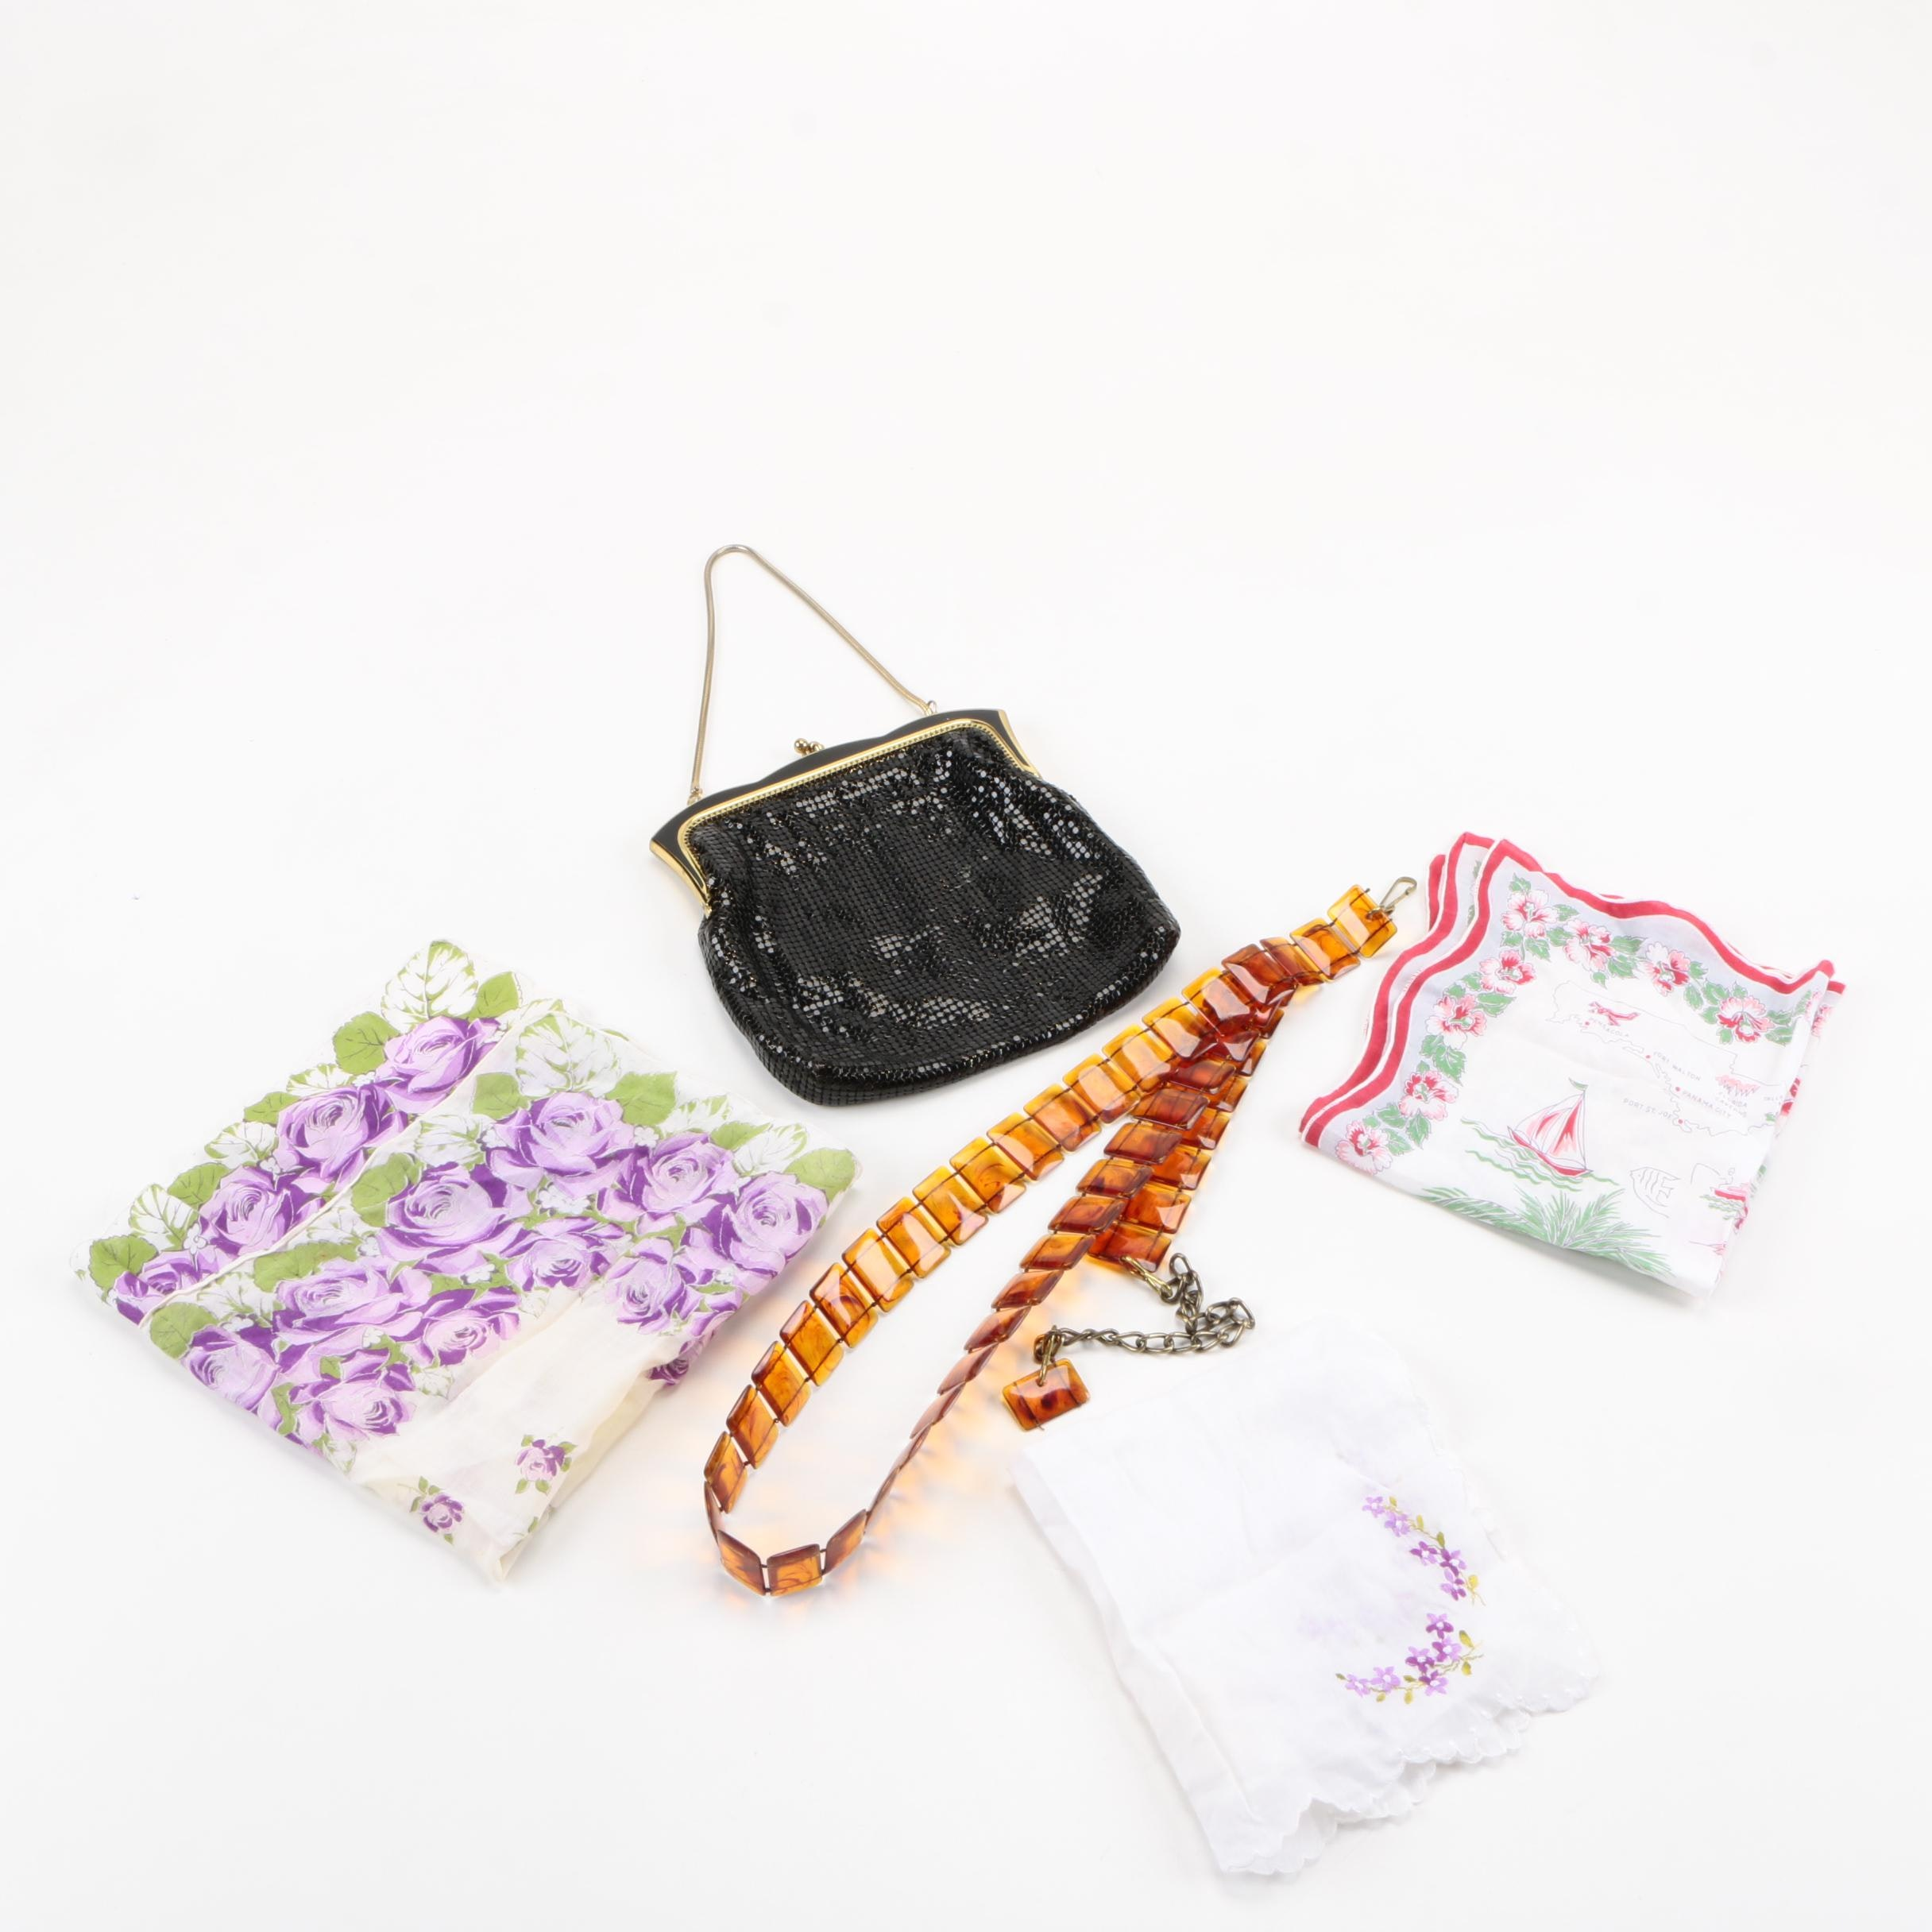 Assorted Accessories featuring Glomesh Black Mesh Handbag